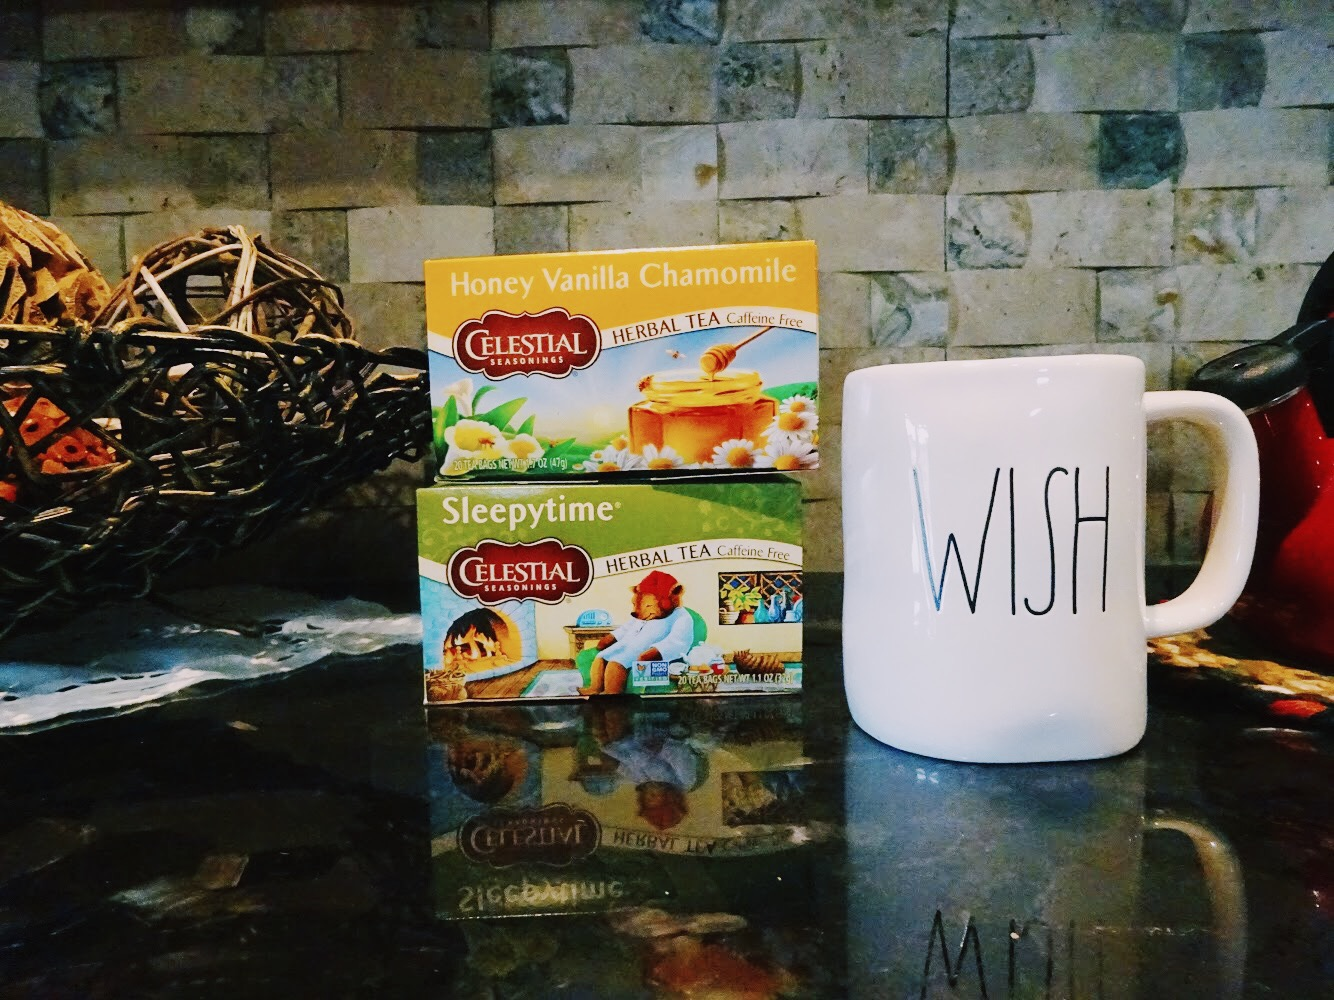 My fall night routine with chamomile tea